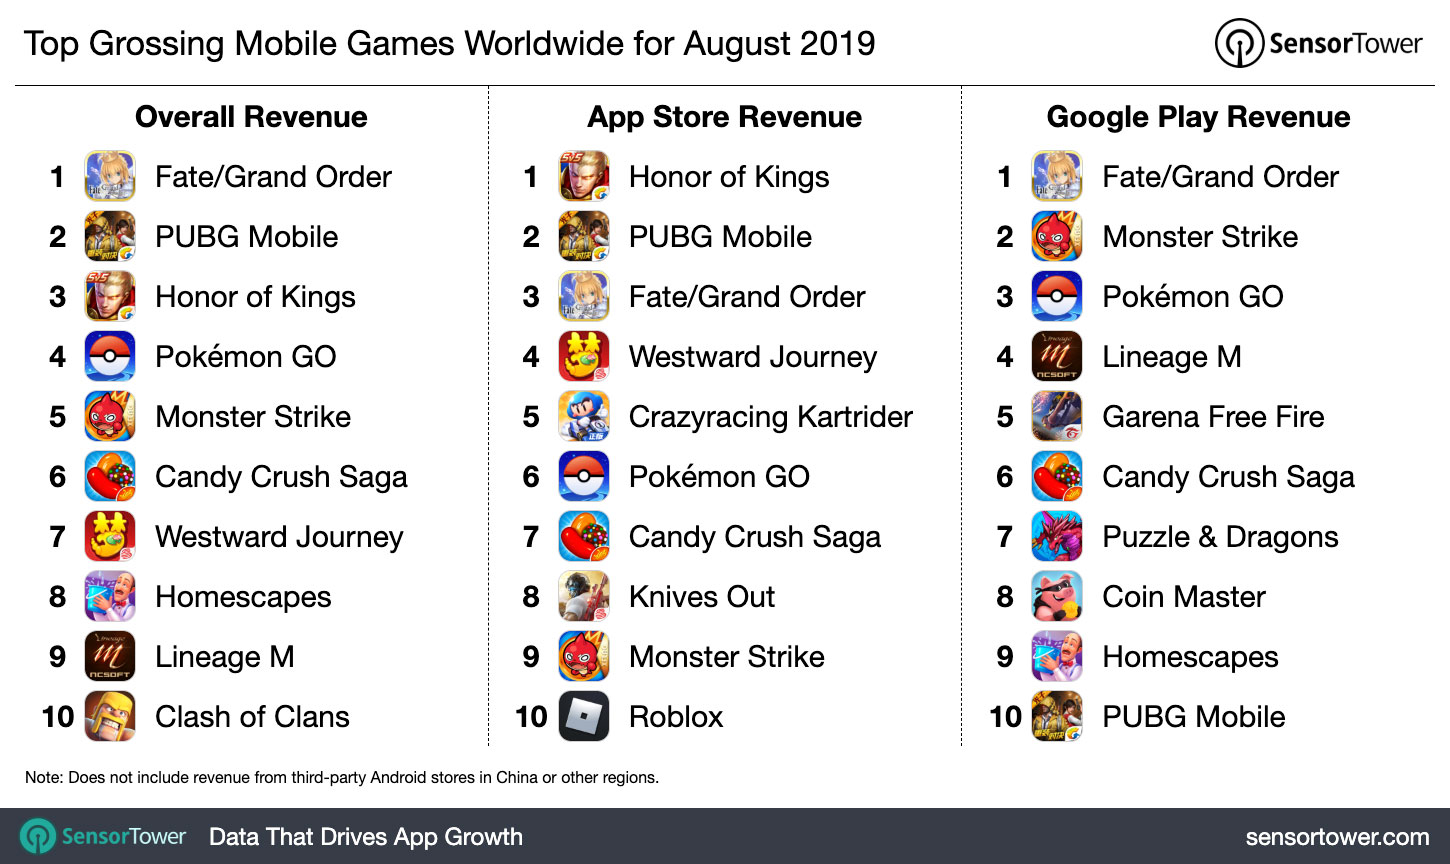 Top Grossing Mobile Games Worldwide For August 2019 Internet